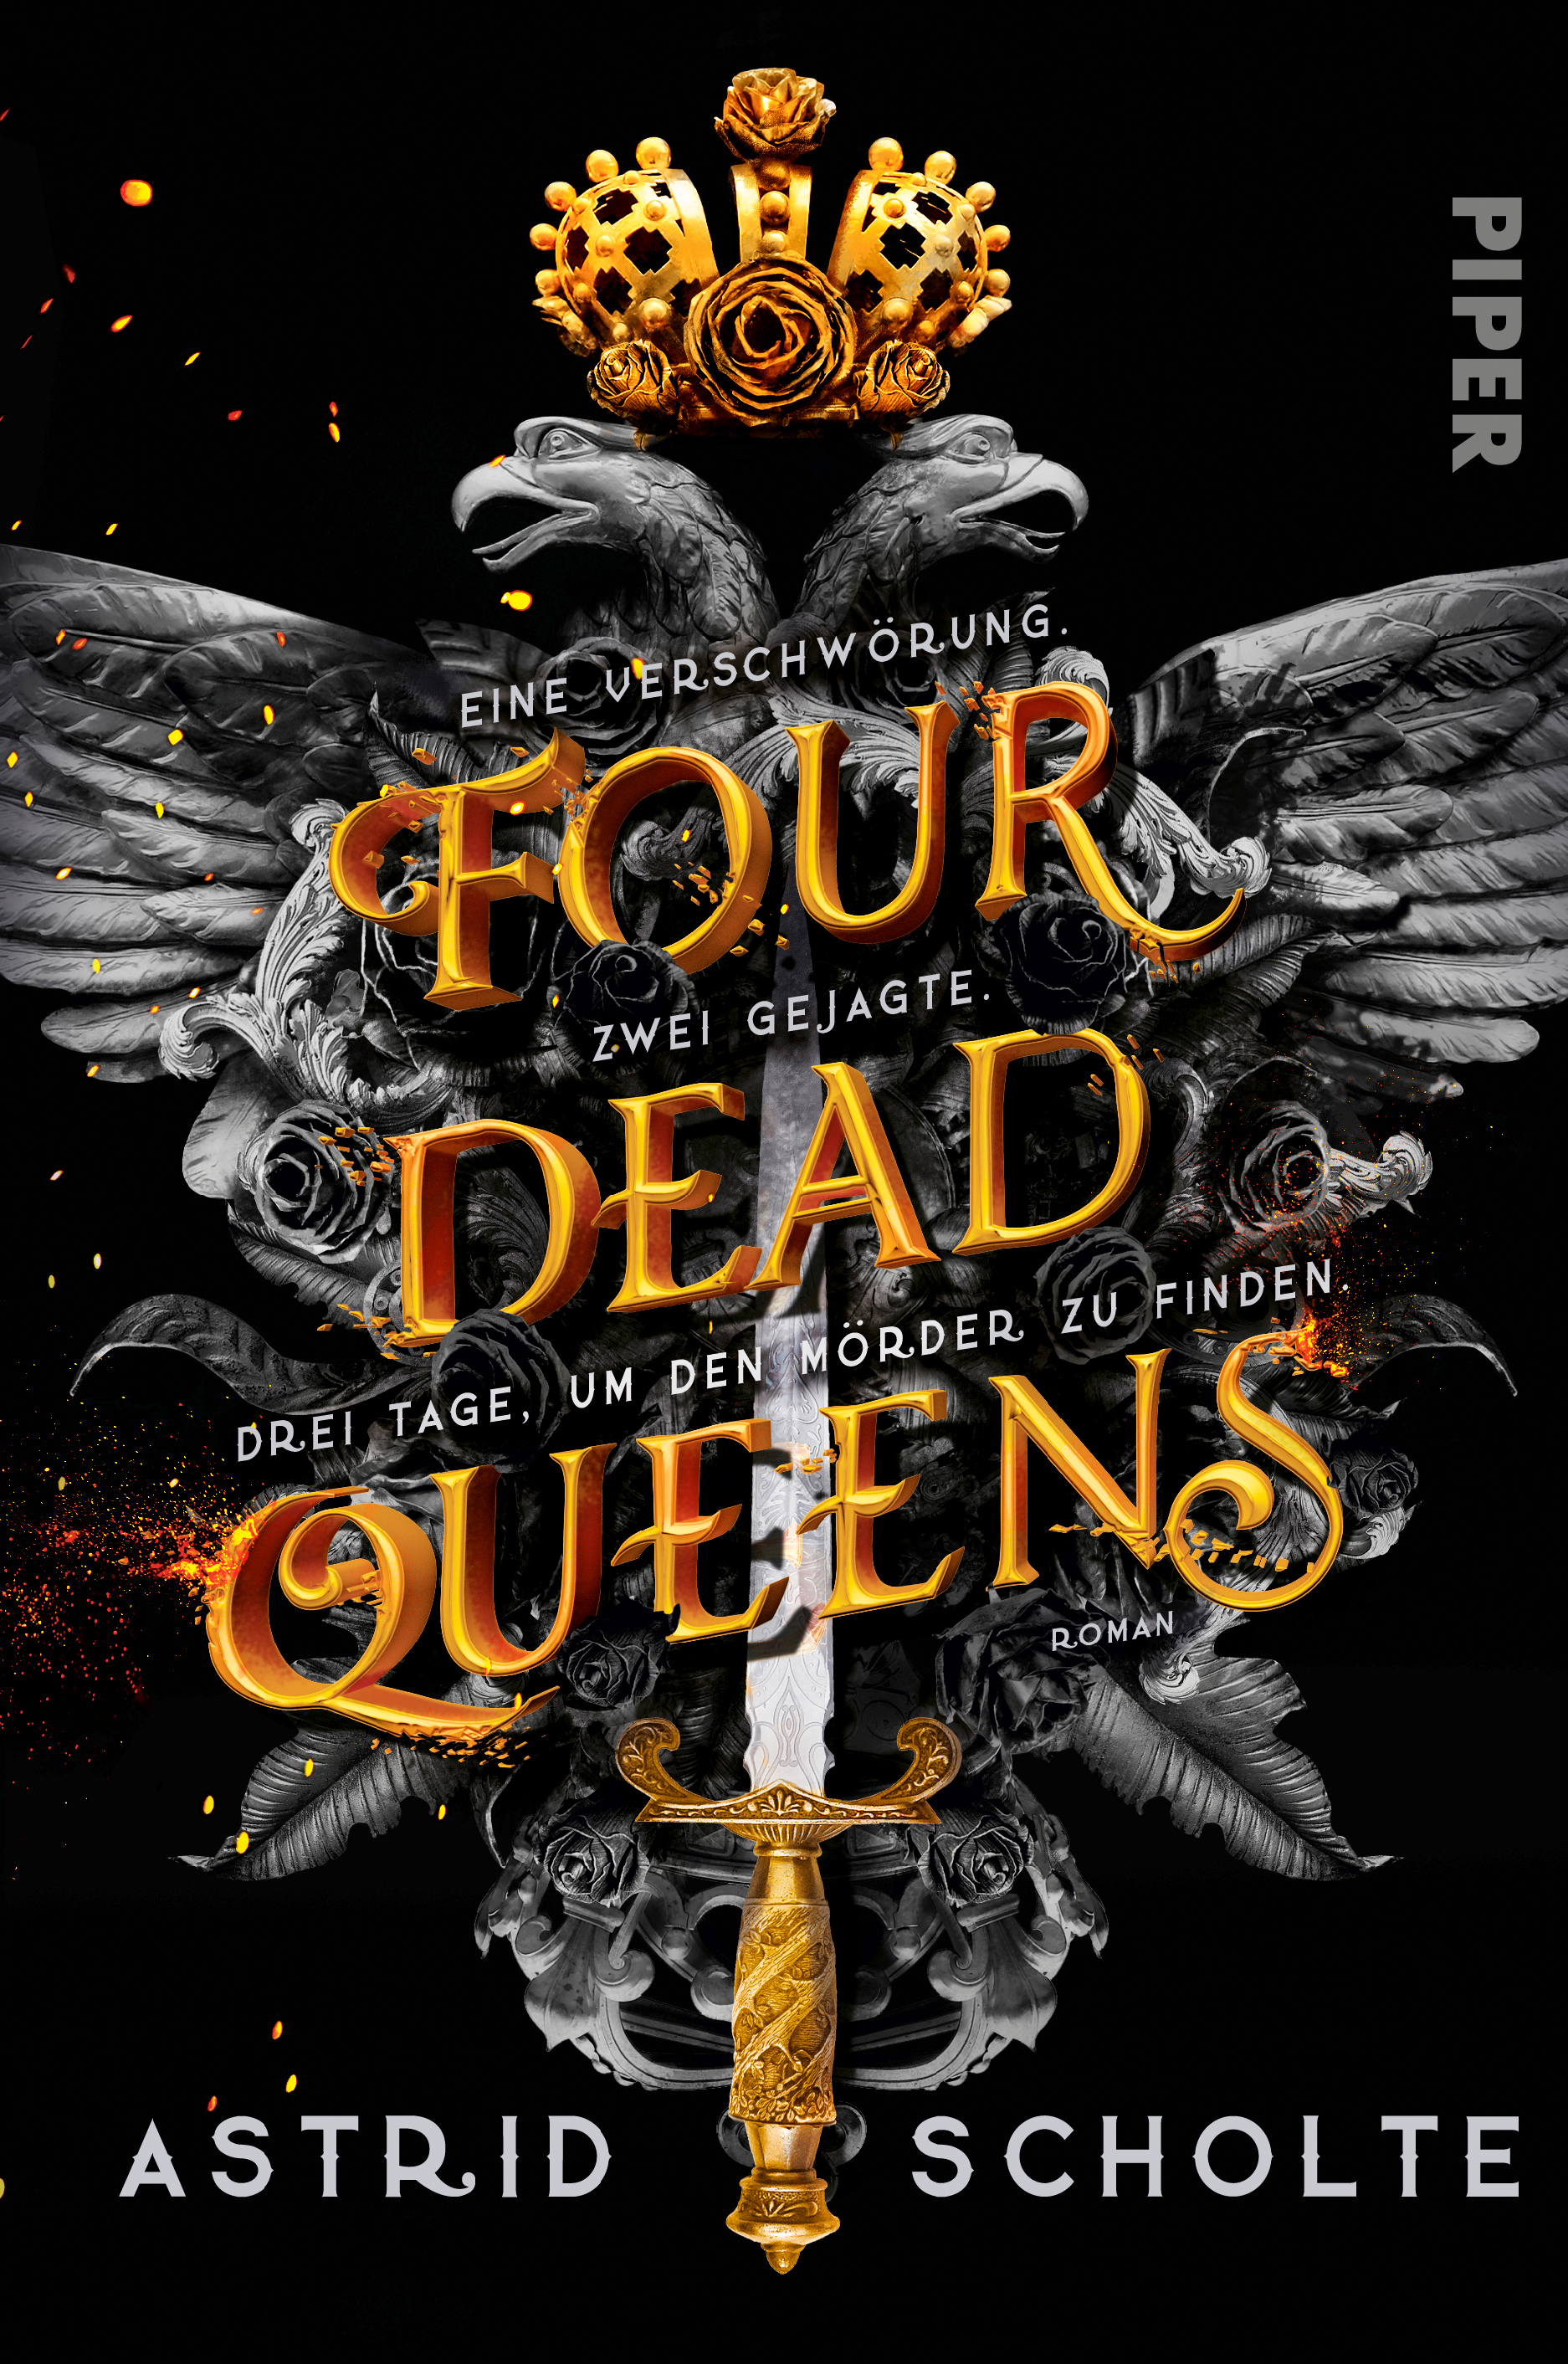 https://www.piper.de/buecher/four-dead-queens-isbn-978-3-492-28171-3